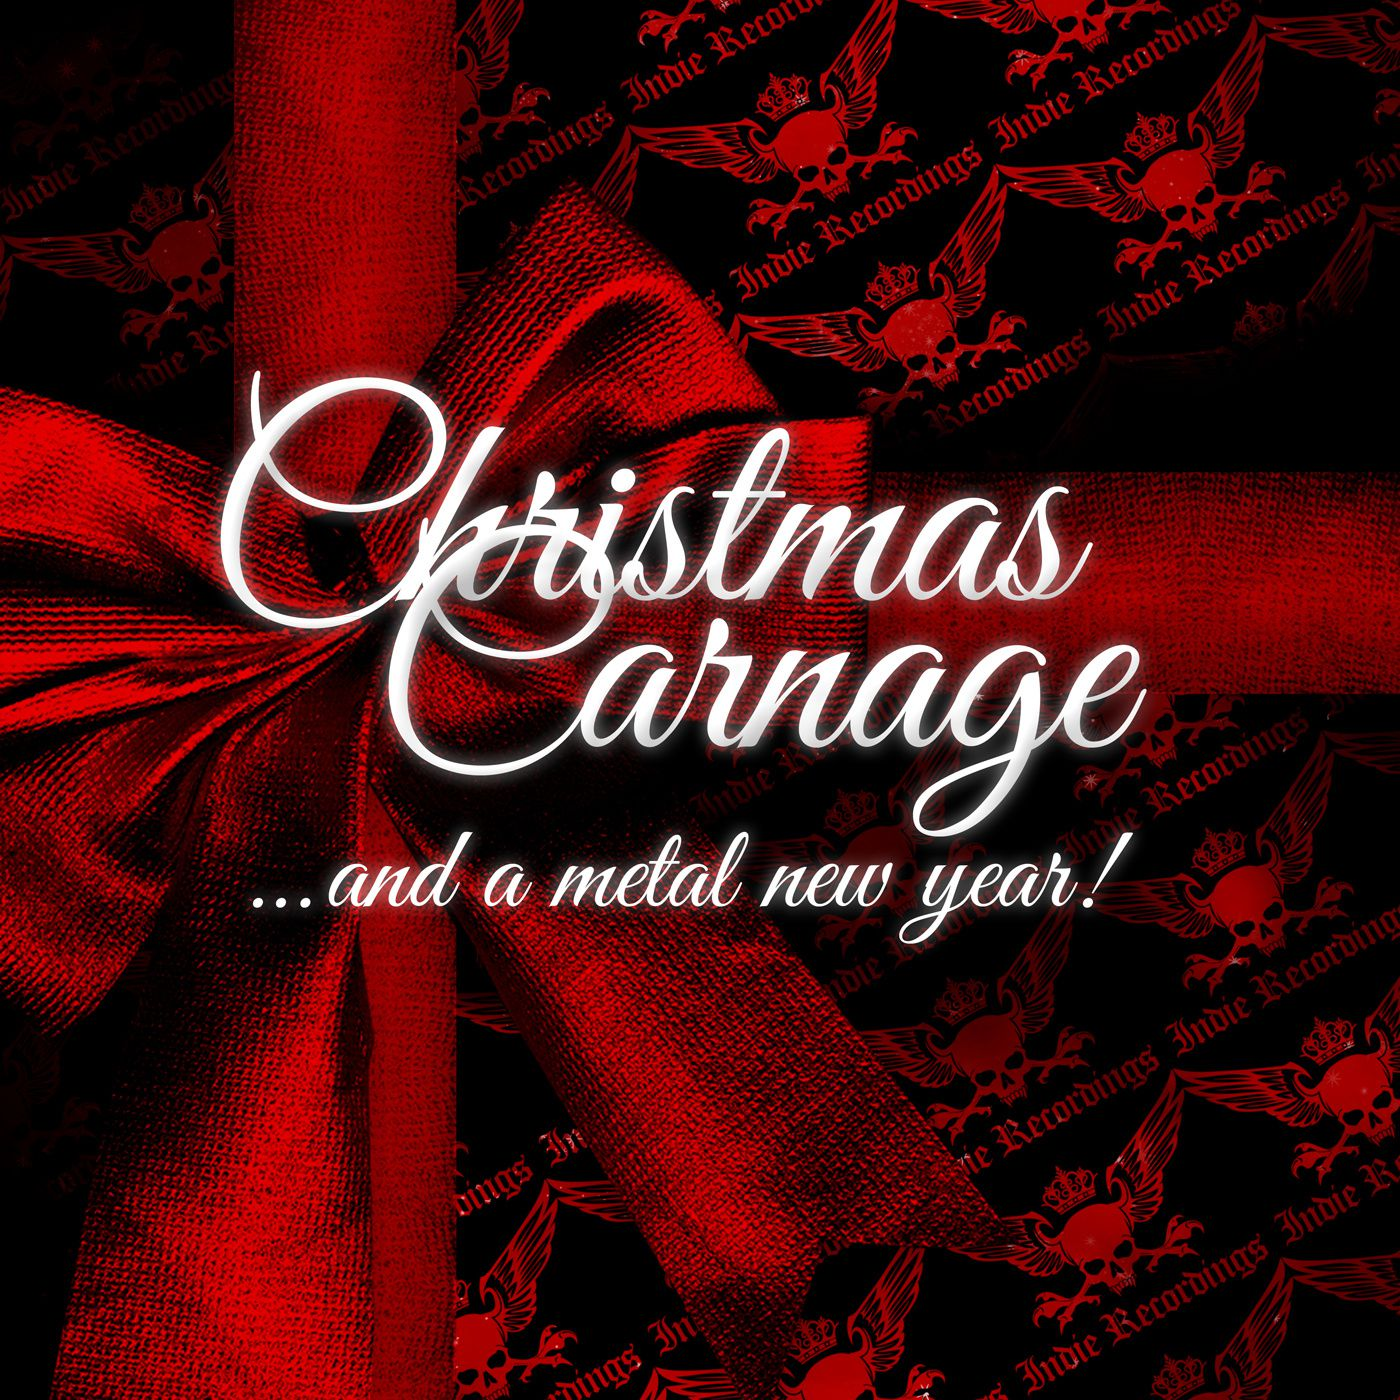 """Compilation from Indie Recordings """"Christmas carnage ... and a metal new year"""""""